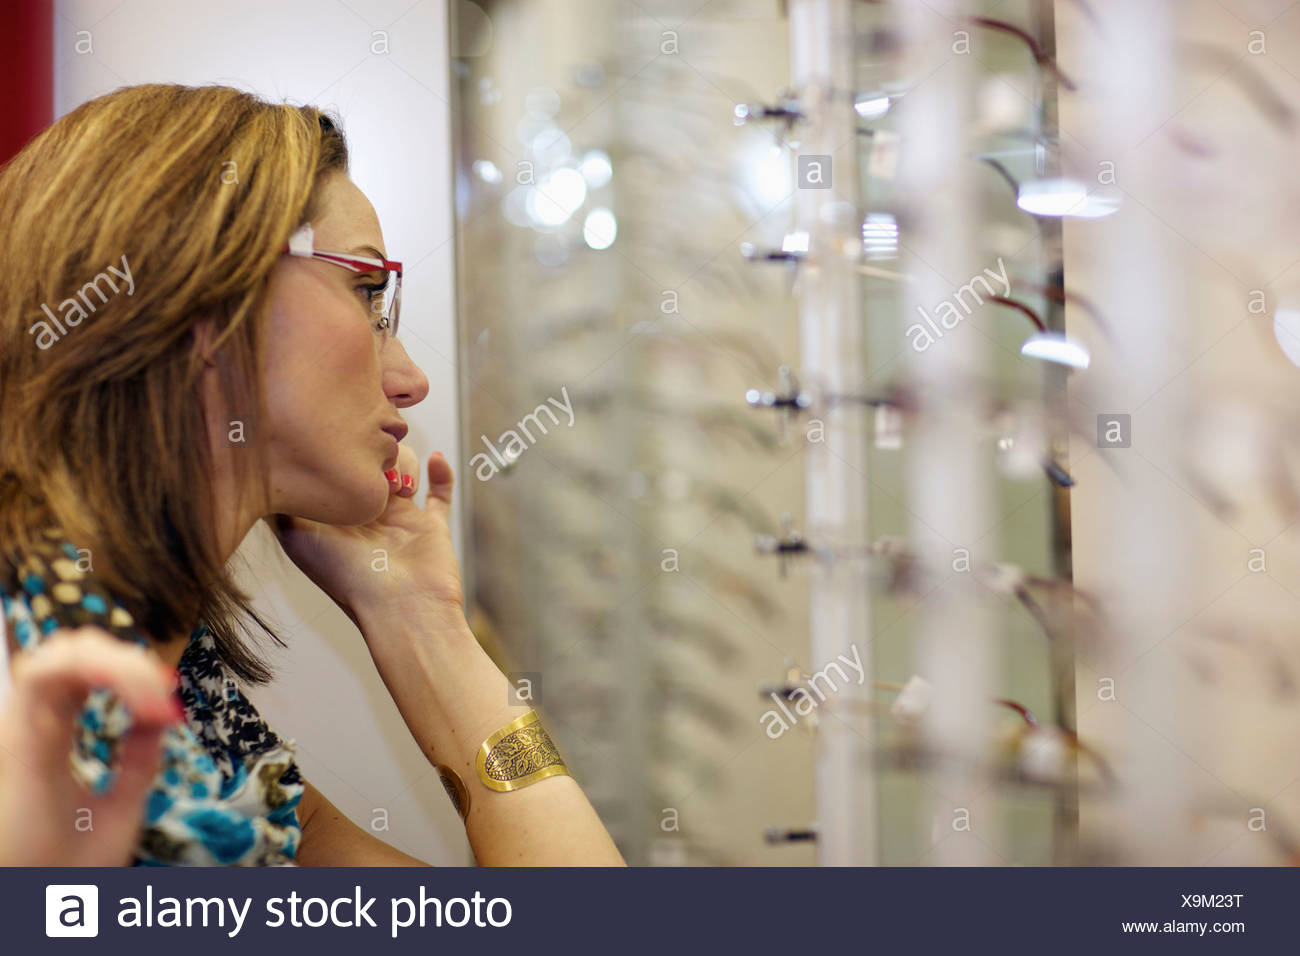 A young woman trying on spectacles, Pietermaritzburg, KwaZulu-Natal, South Africa - Stock Image